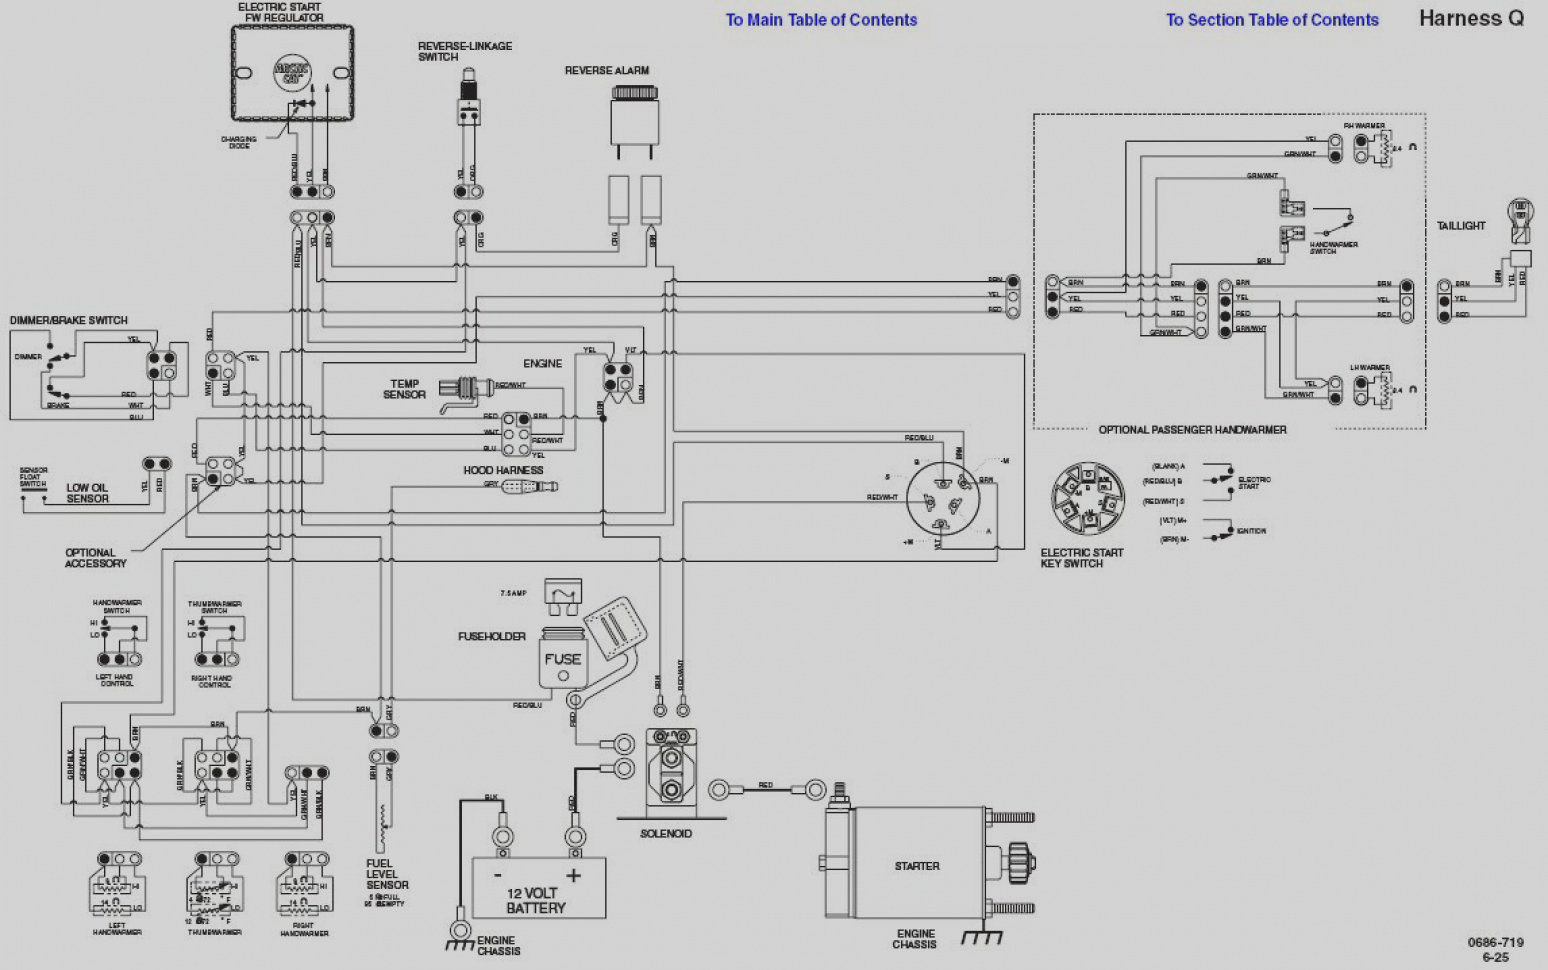 Roto Phase Converter Wiring Diagram Sample Wiring Diagram Sample 2002  Polaris Sportsman 700 Wiring Diagram Polaris Ranger Wiring Diagram